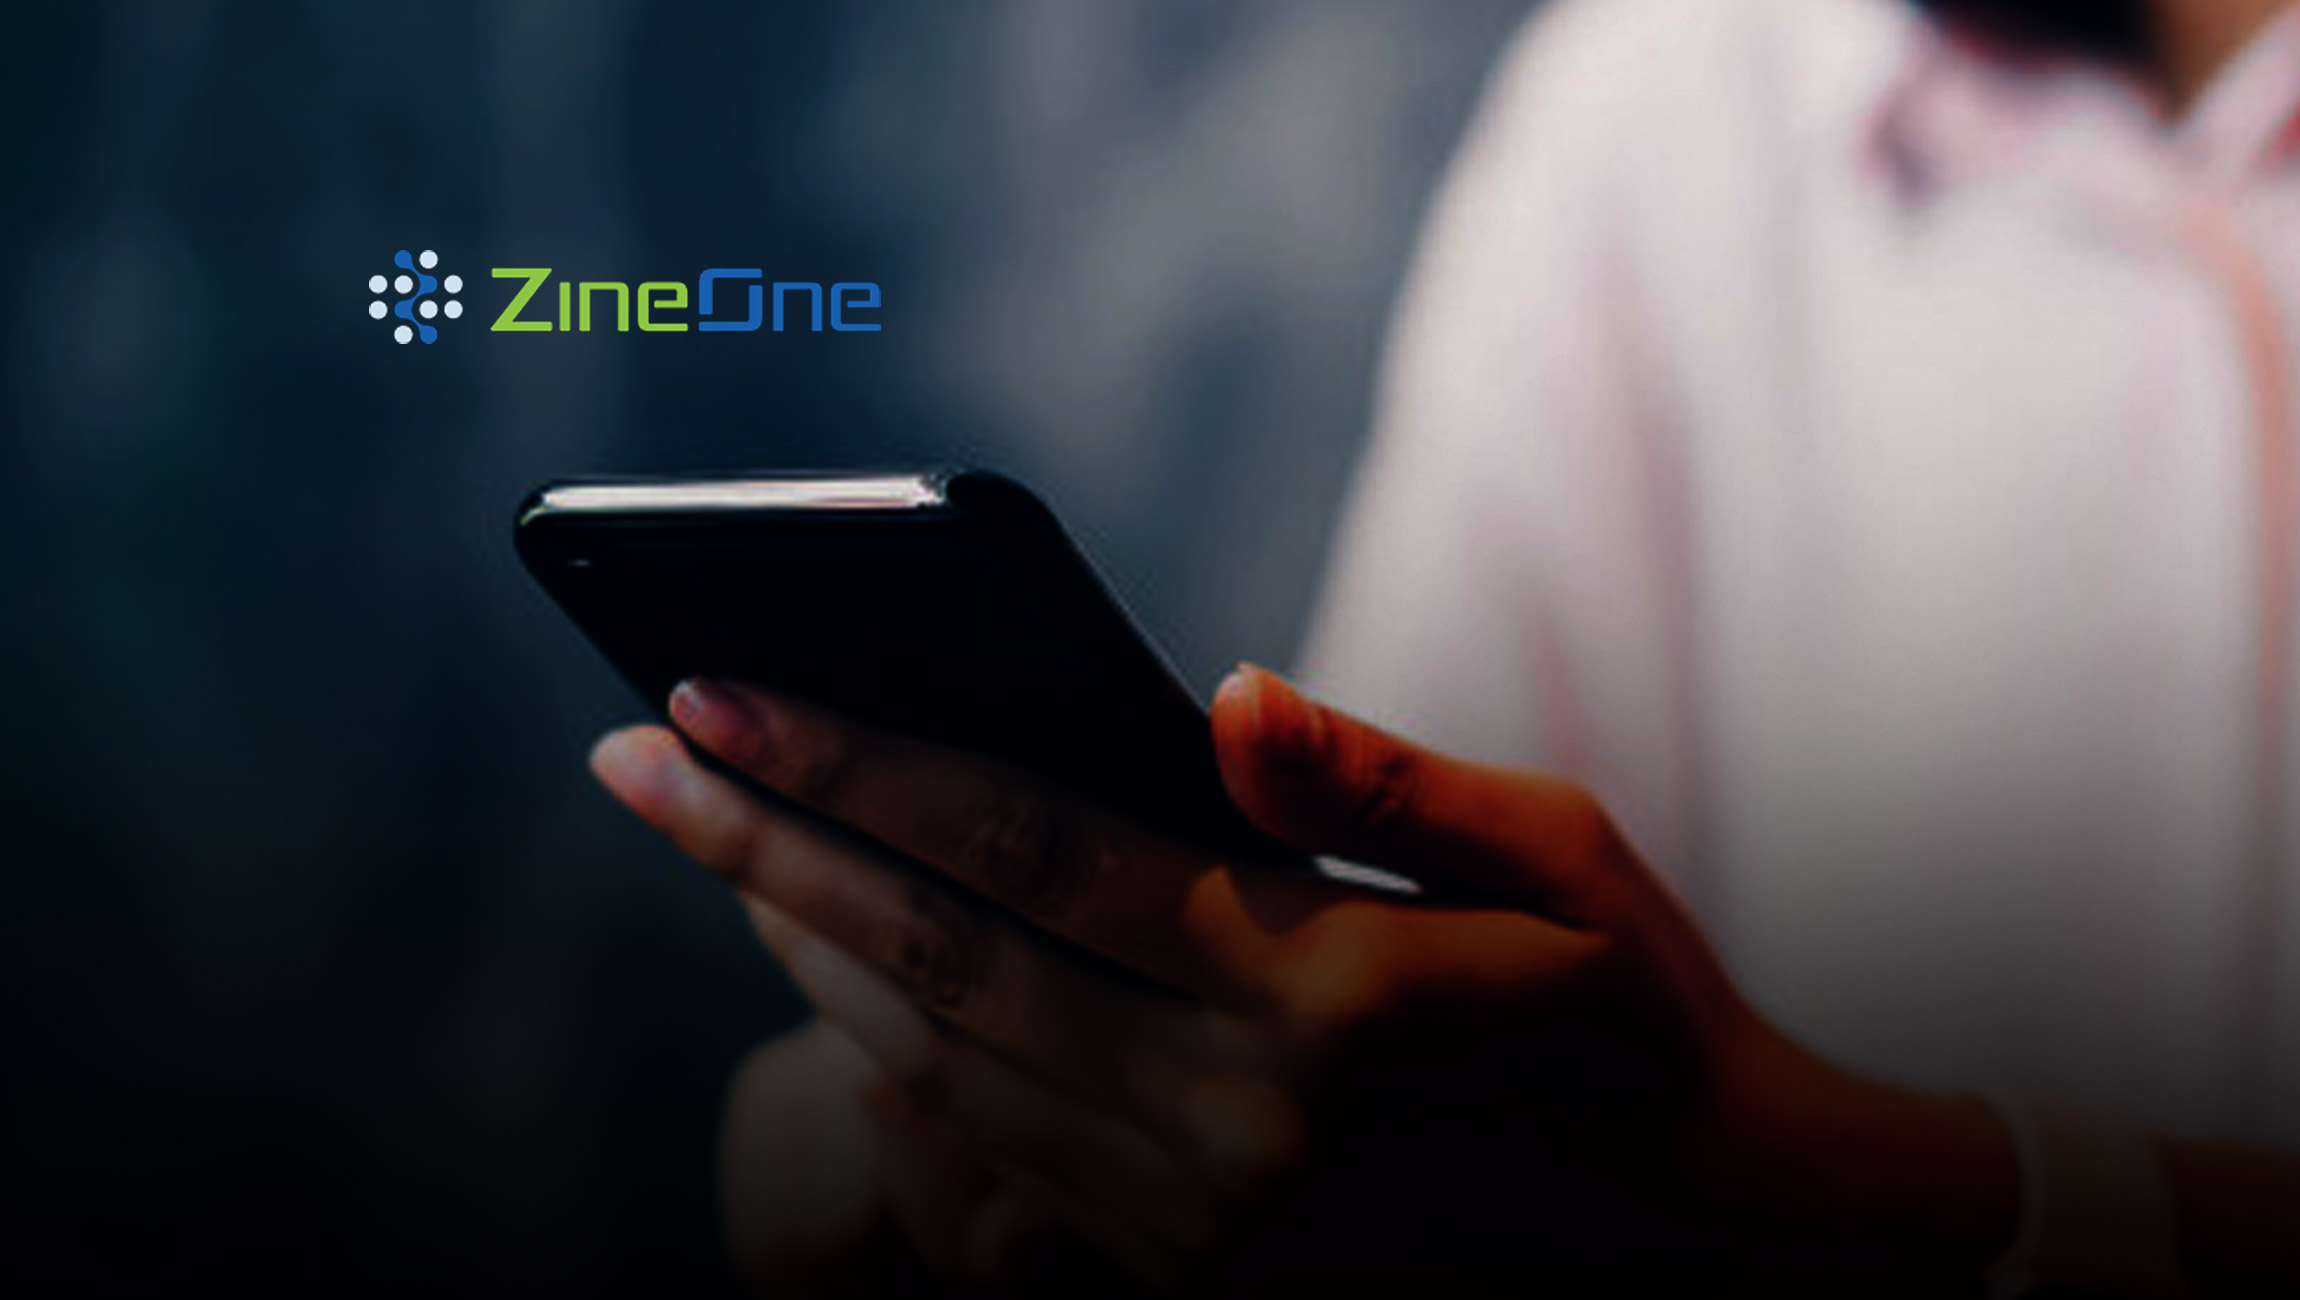 Achieve Greater Hyper-Personalization with ZineOne's Flexible Connectors